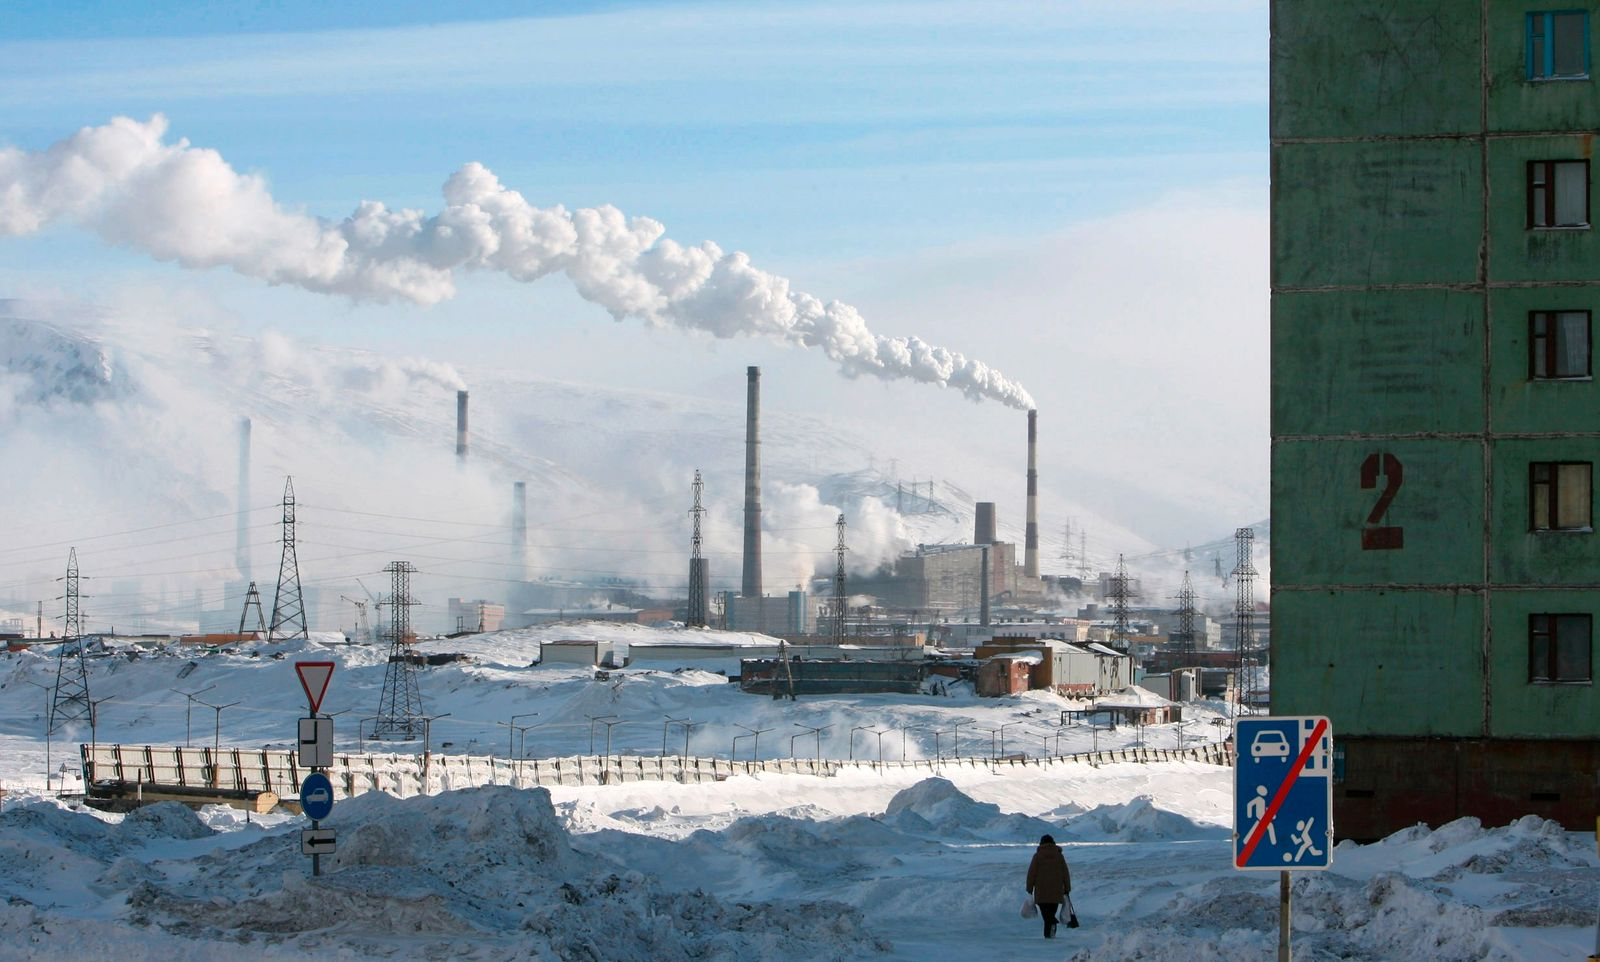 A woman walks near a nickel mine in the arctic city of Norilsk